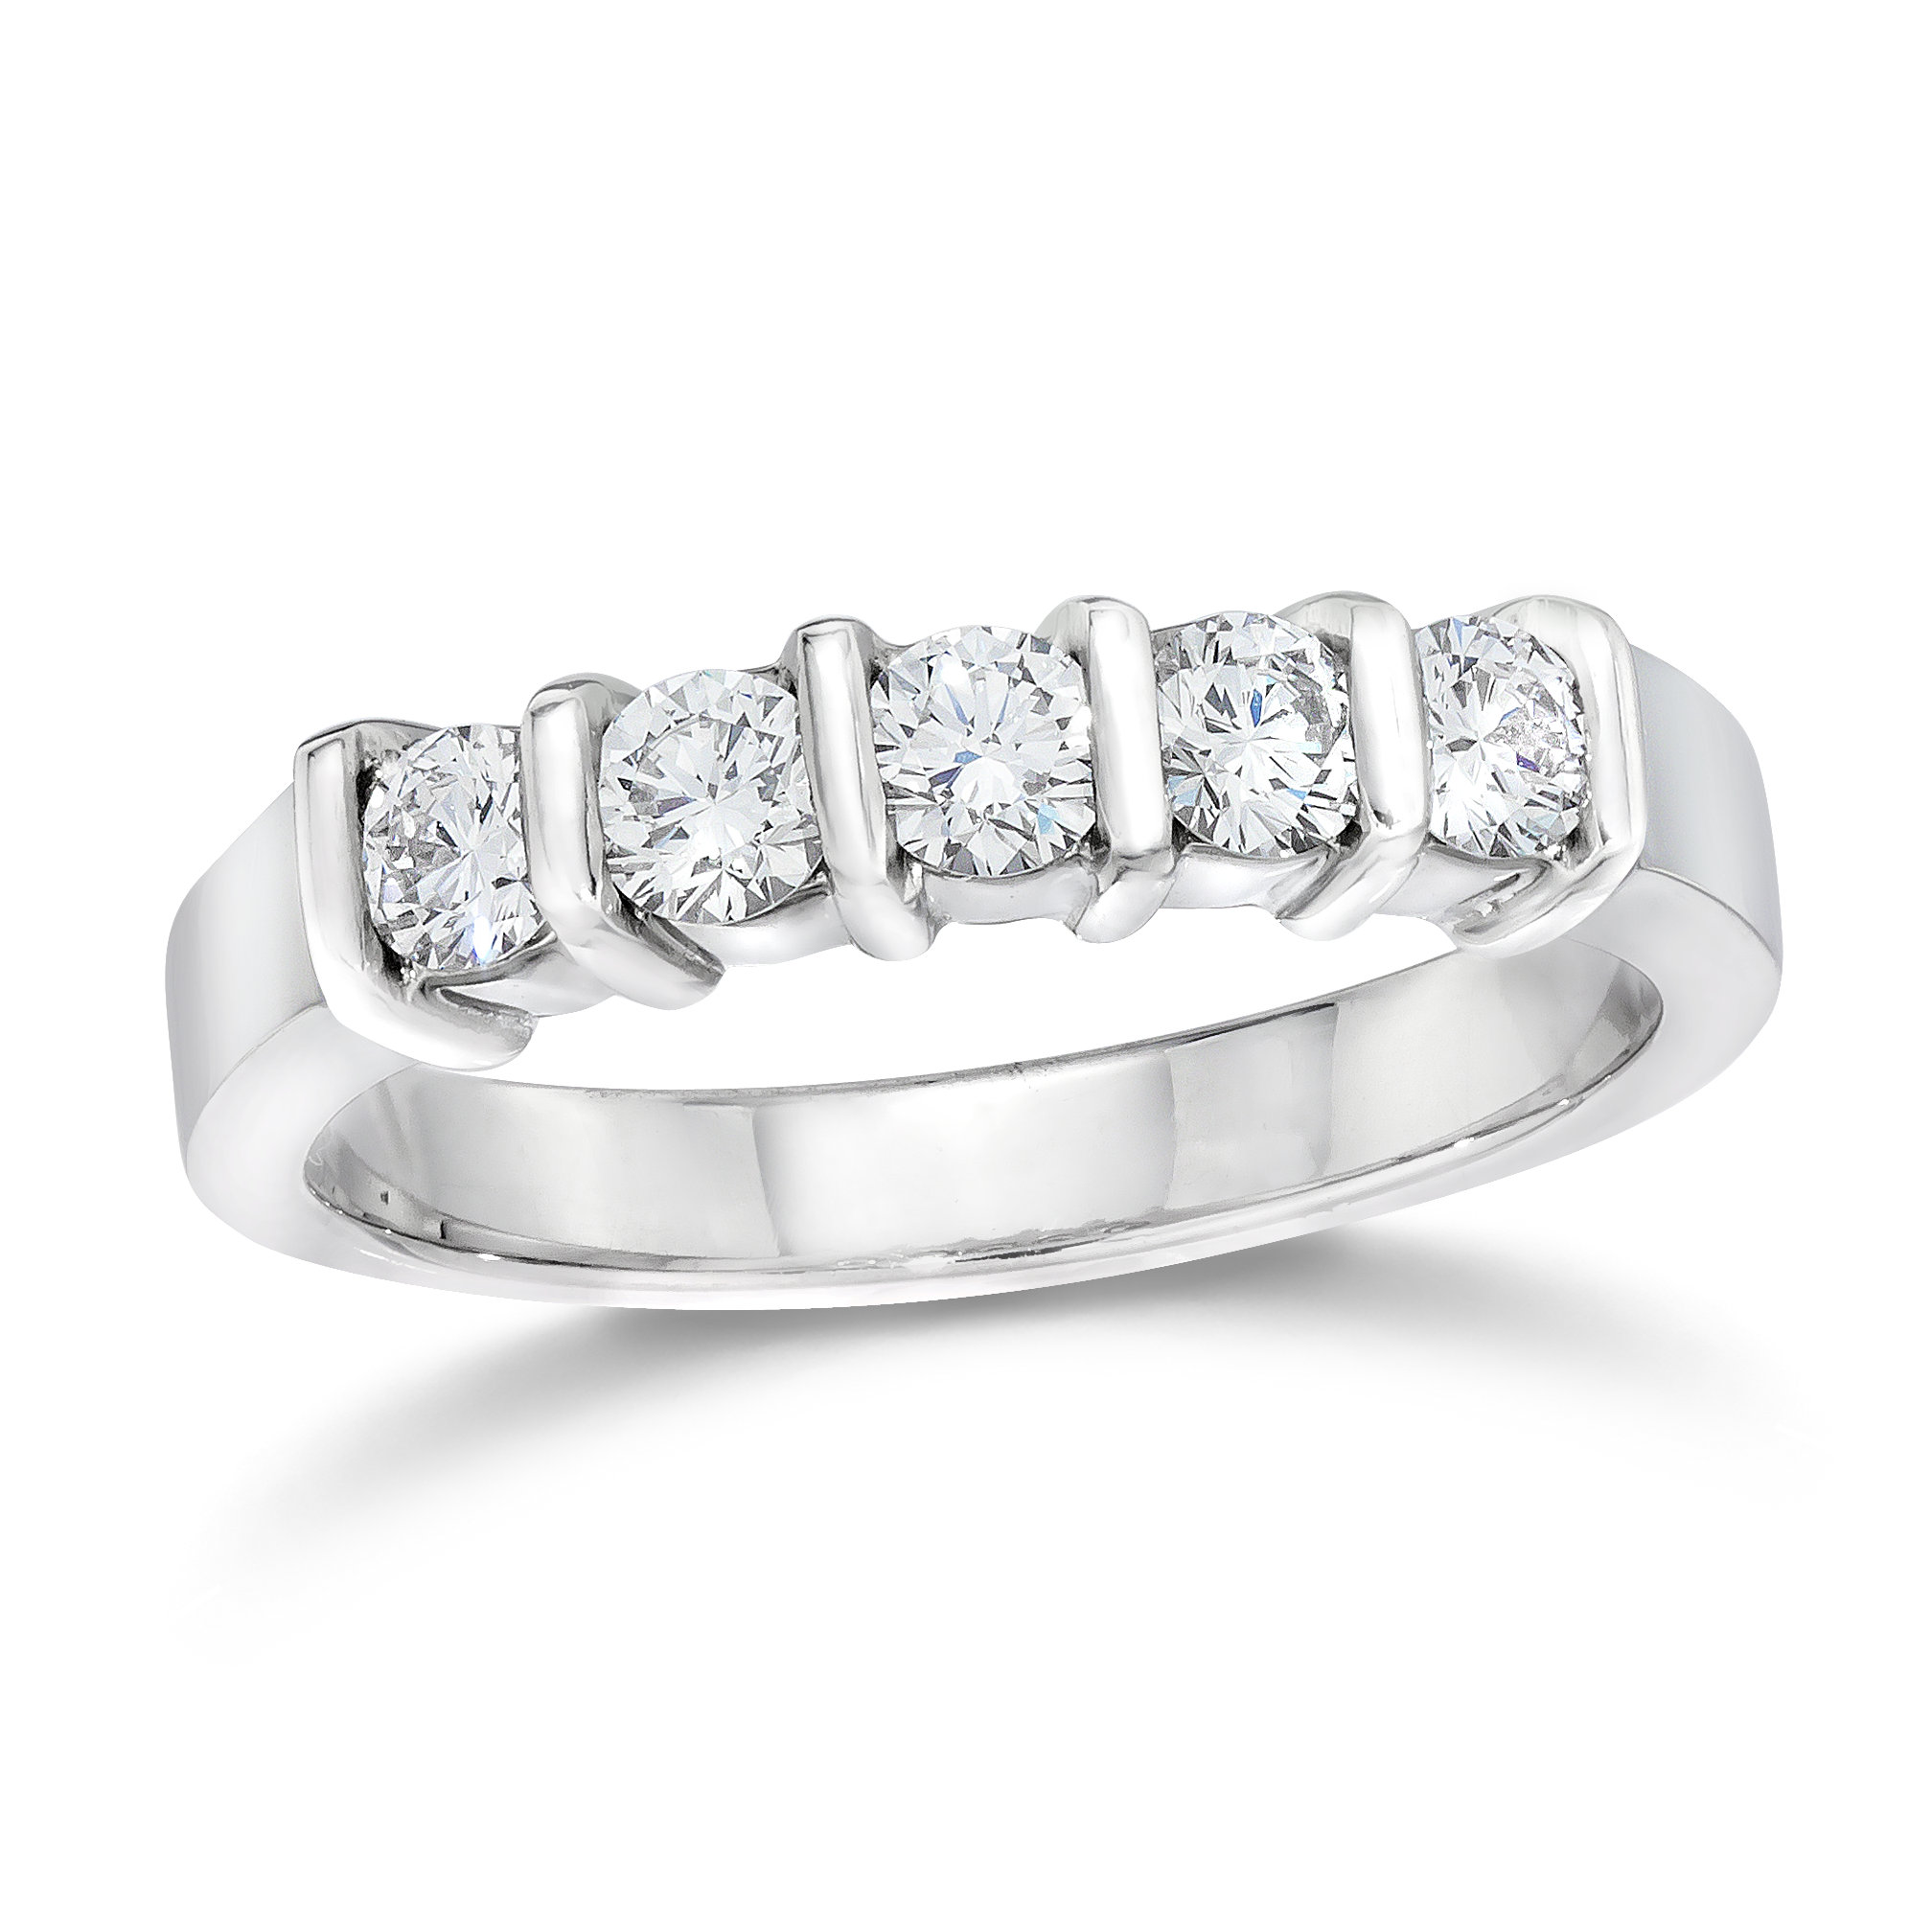 bands band bridal jewelry wedding infinity photography baguette platinum engagement stock diamond